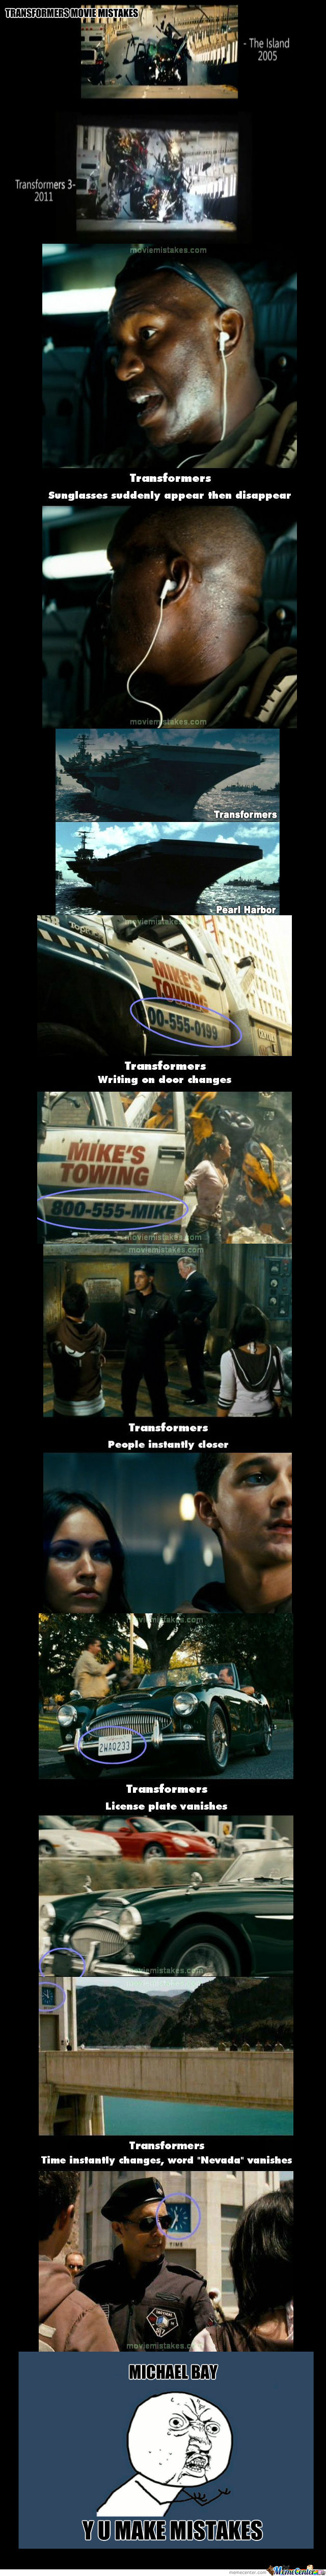 Michael Bay Mistakes (Transformers)